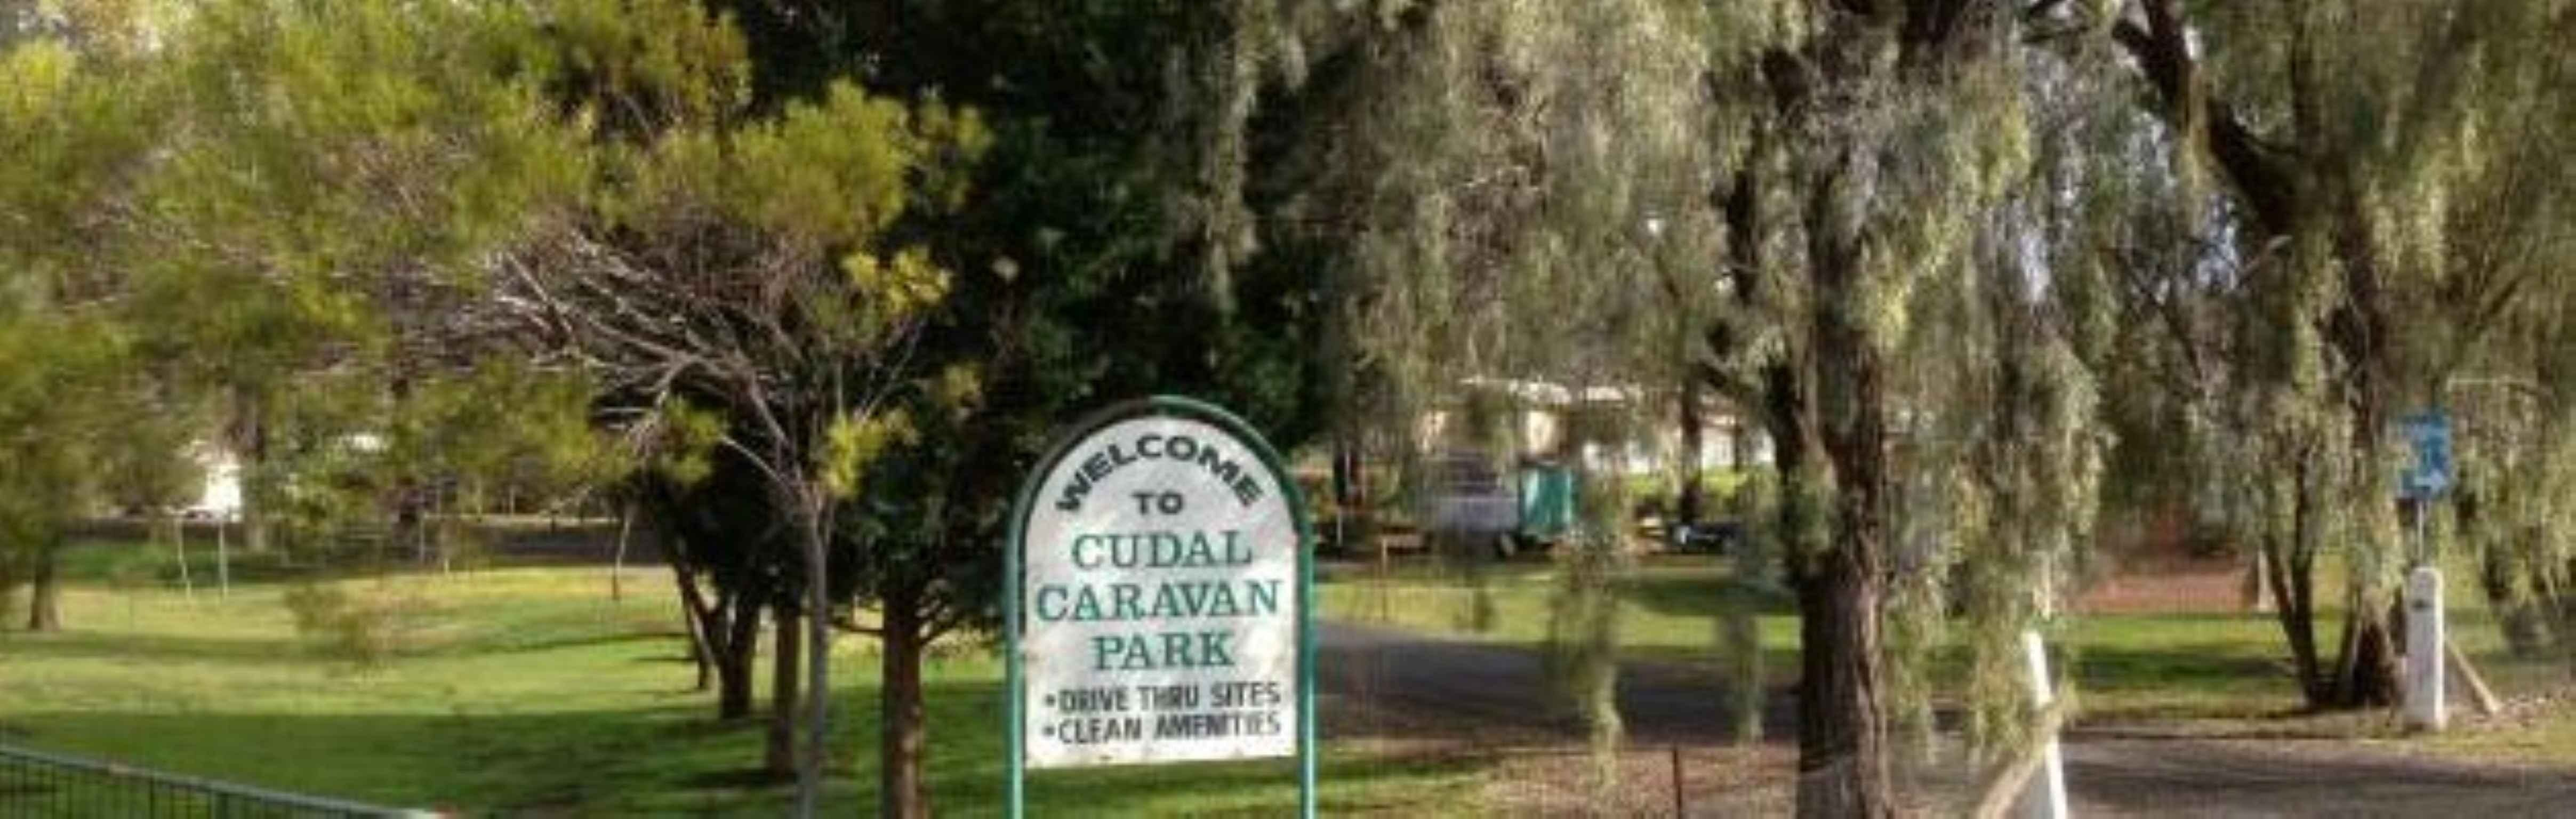 Cudal Caravan Park - Accommodation Gold Coast